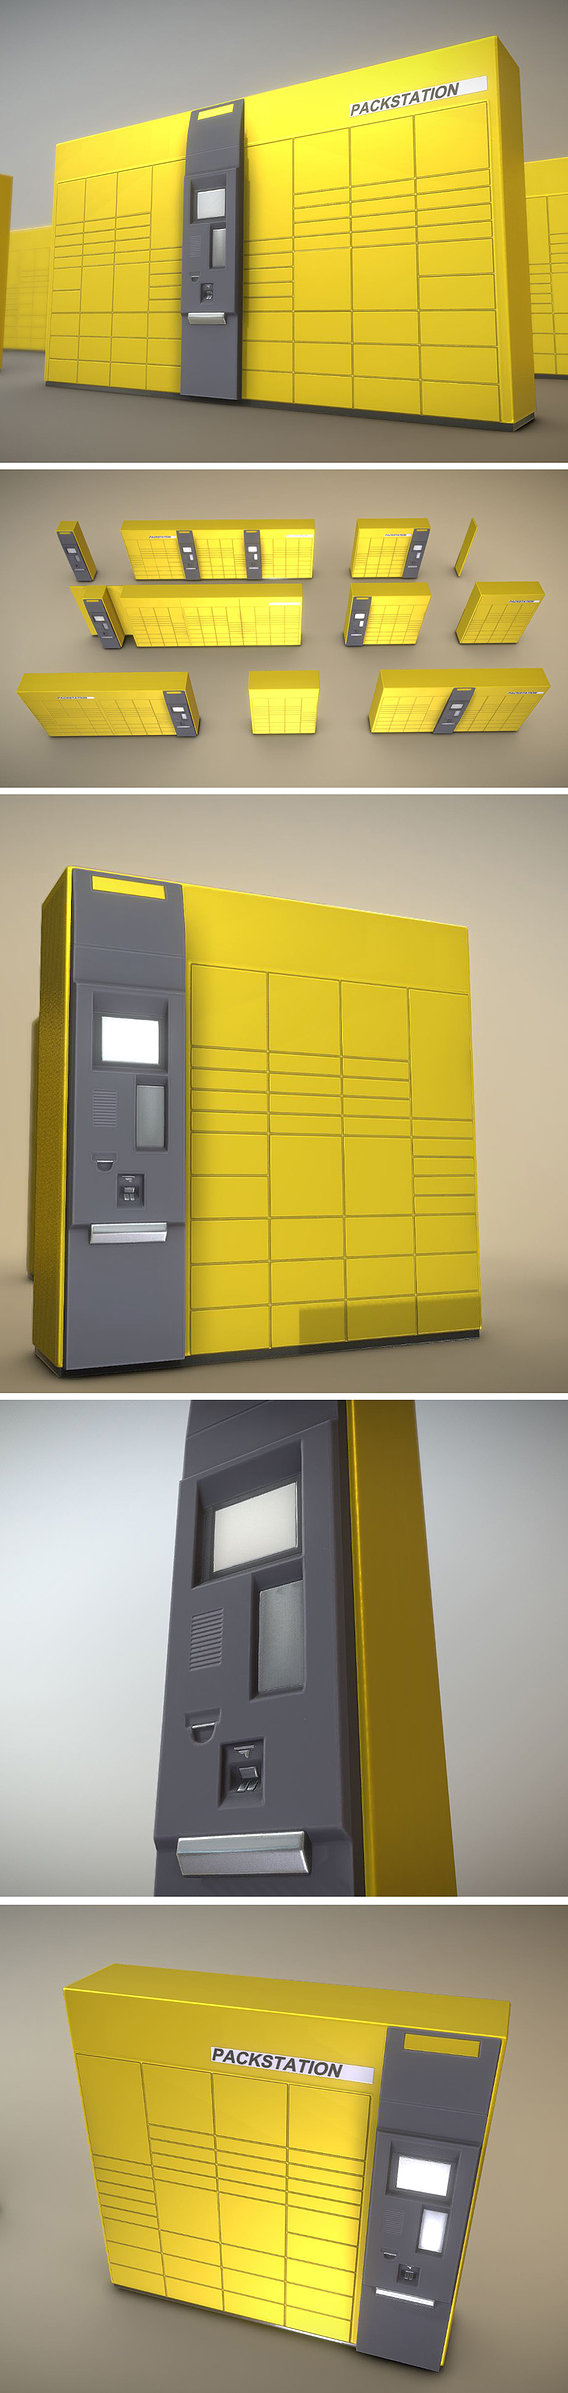 Pack-Station Low-Poly Package